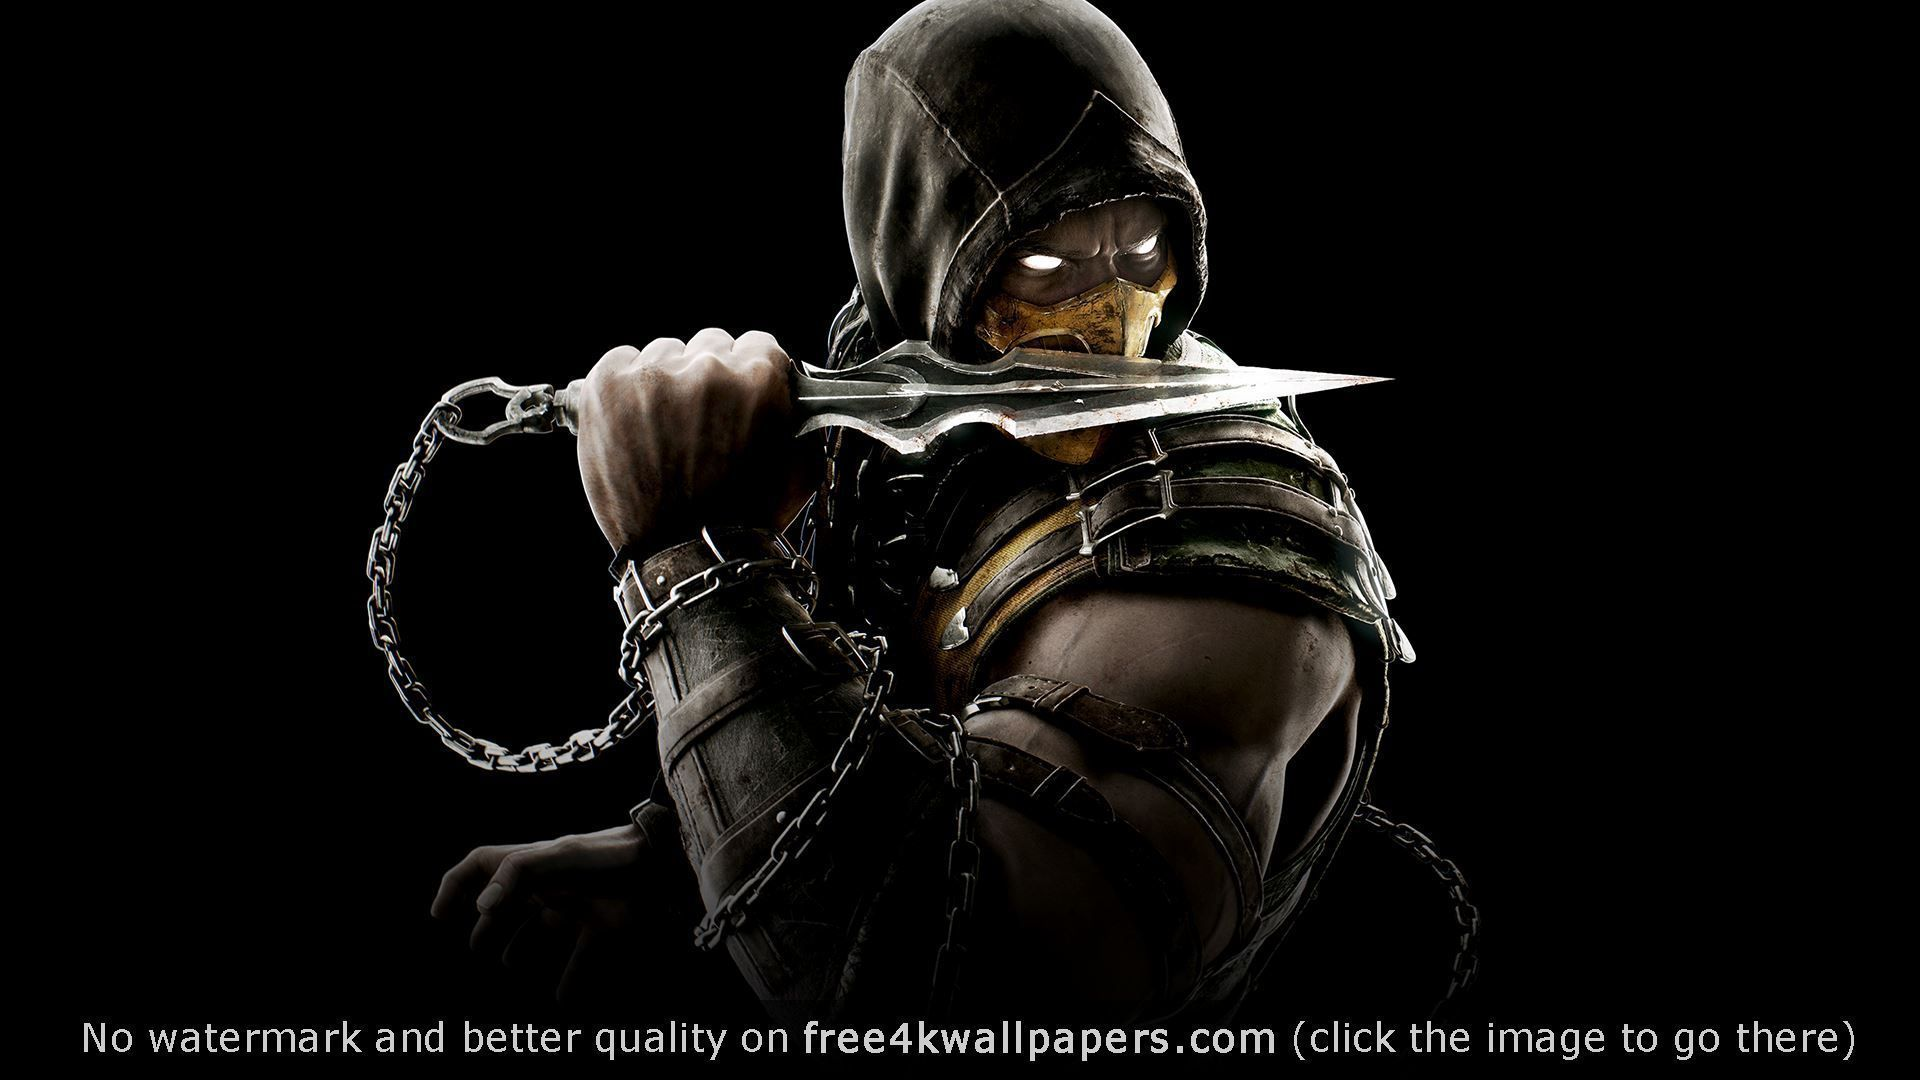 Scorpion Mortal Kombat X 27135 wallpaper Mortal kombat x